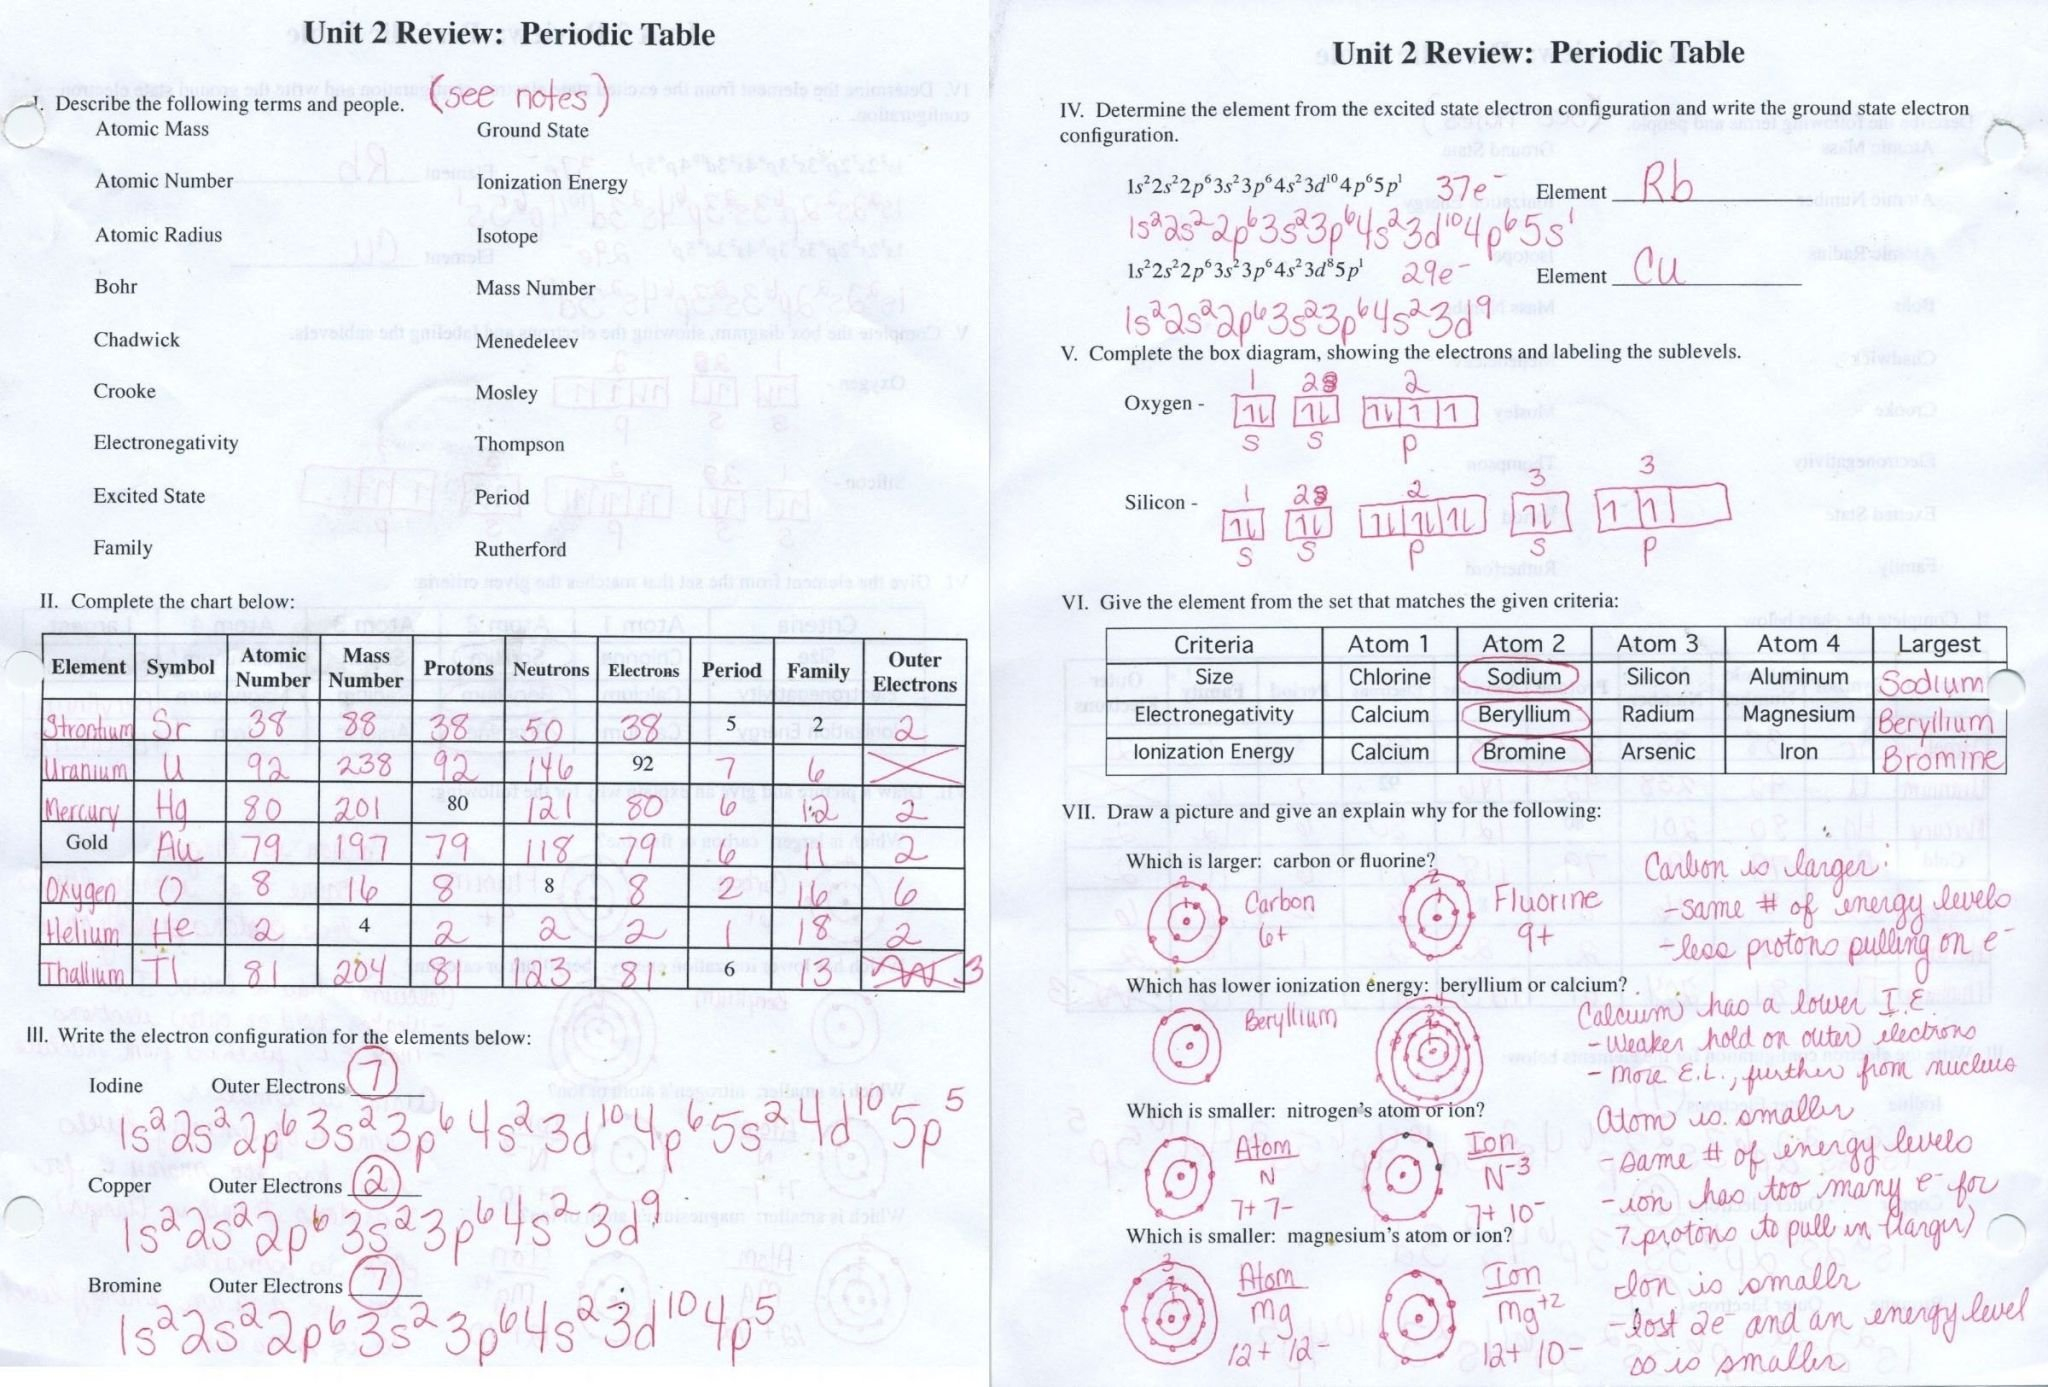 Worksheet Atoms Isotopes And Ions Answers